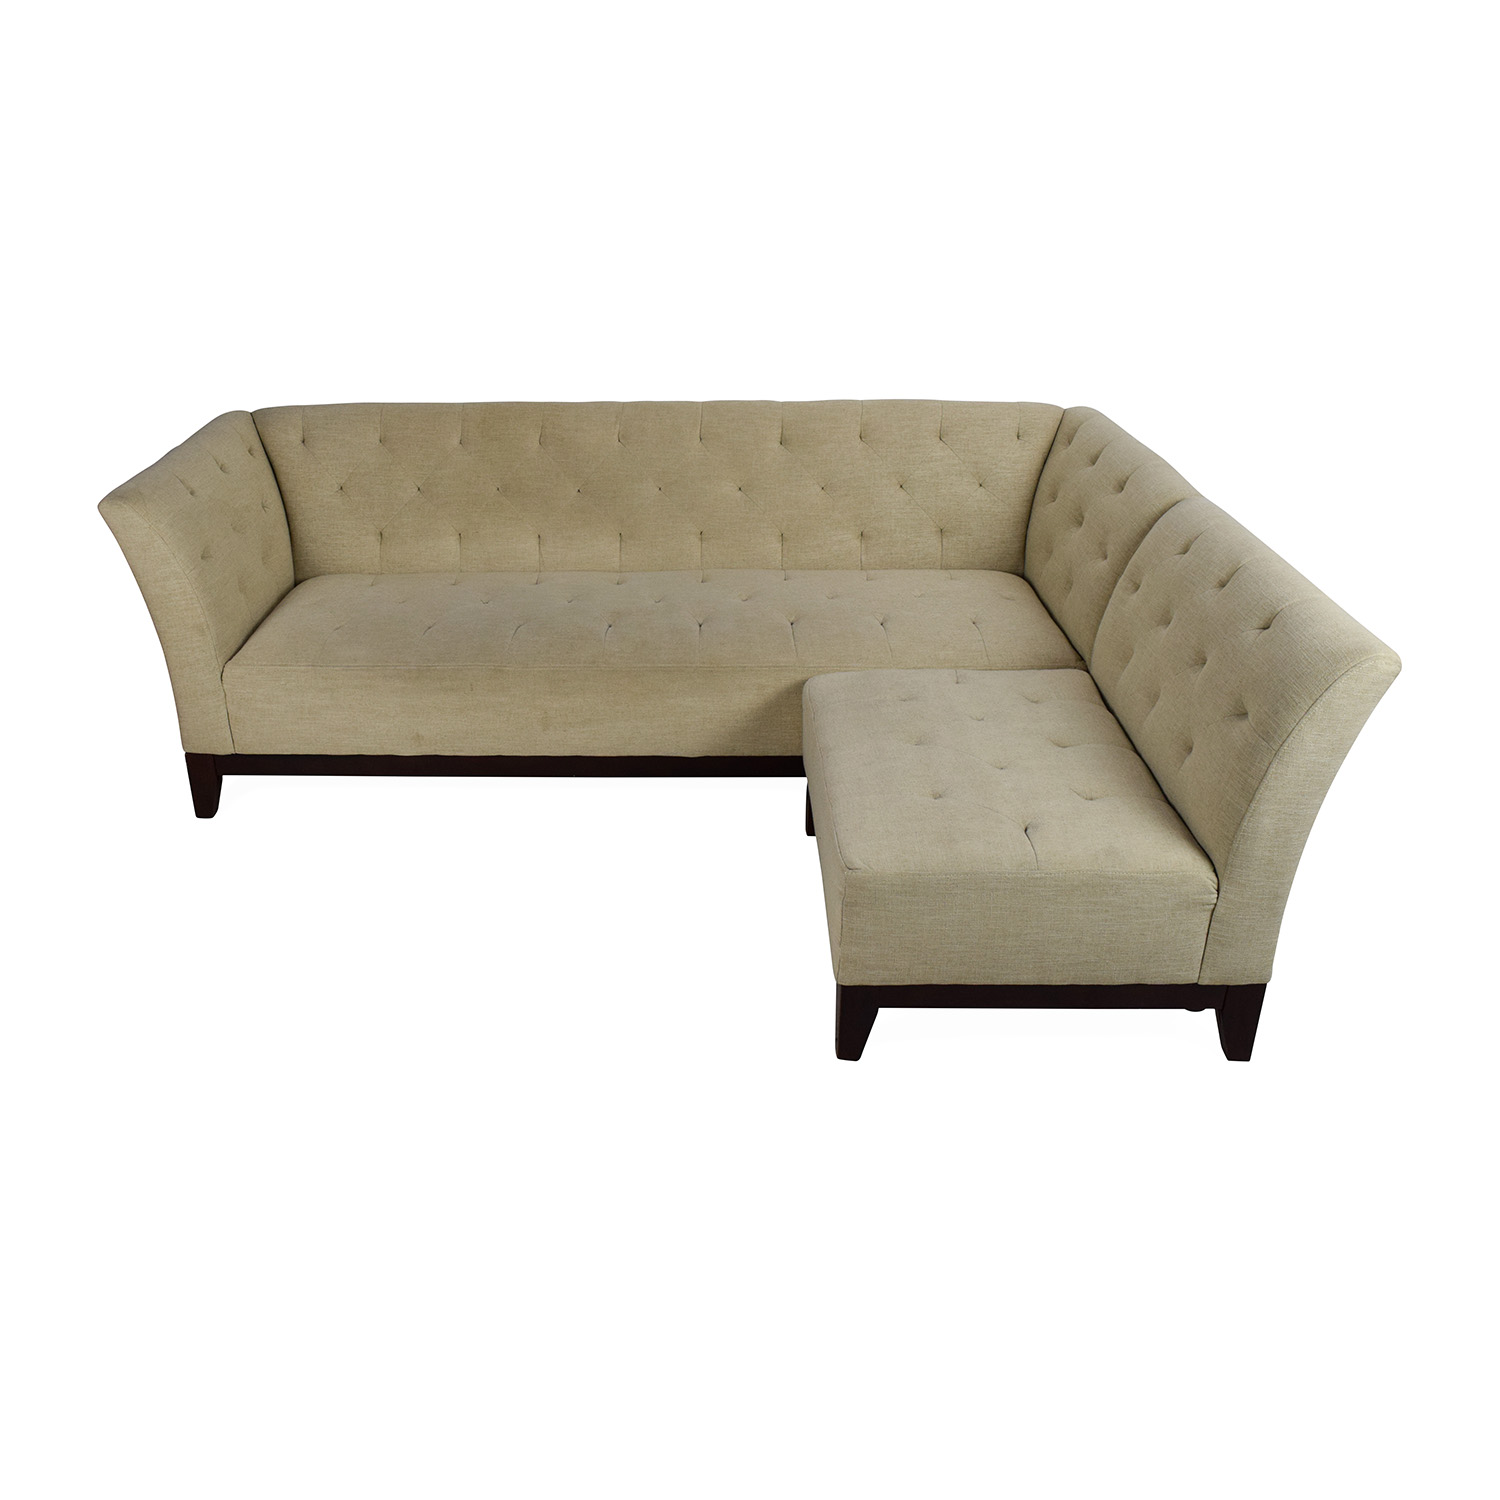 63 OFF Macys Macys Tufted Sofa With Modular Chaise Sofas